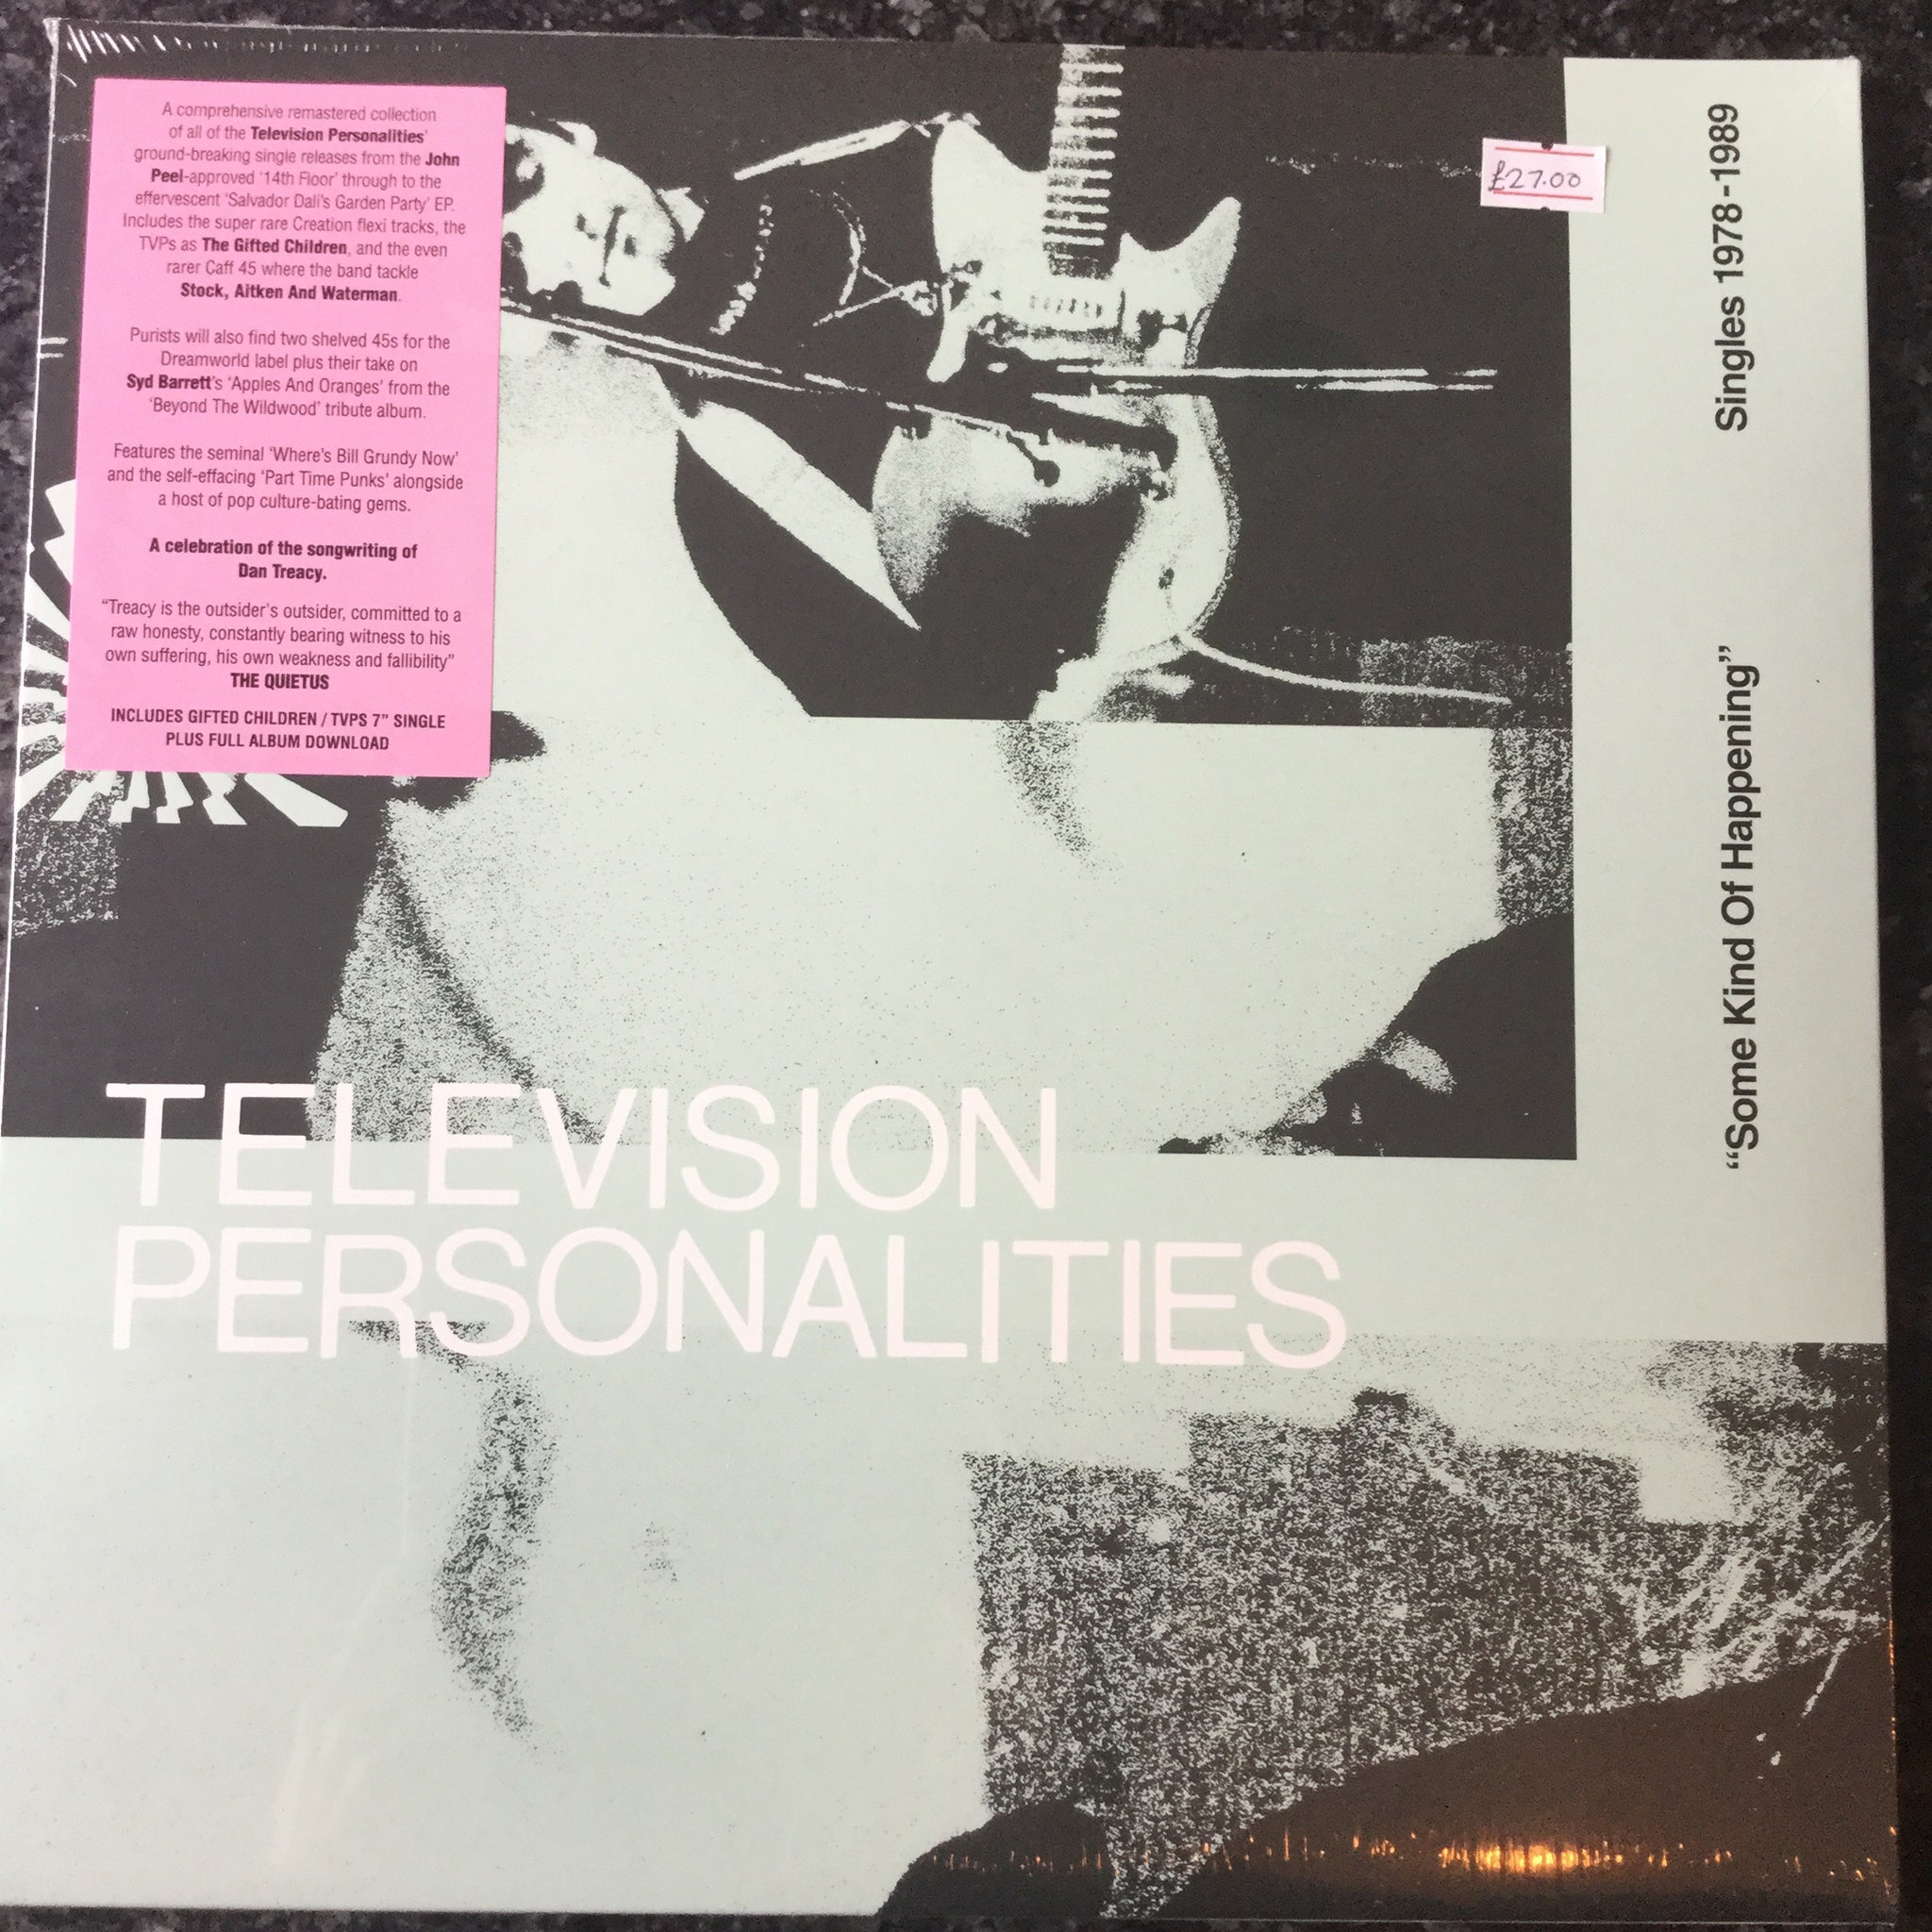 Television personalities - some kind of happening